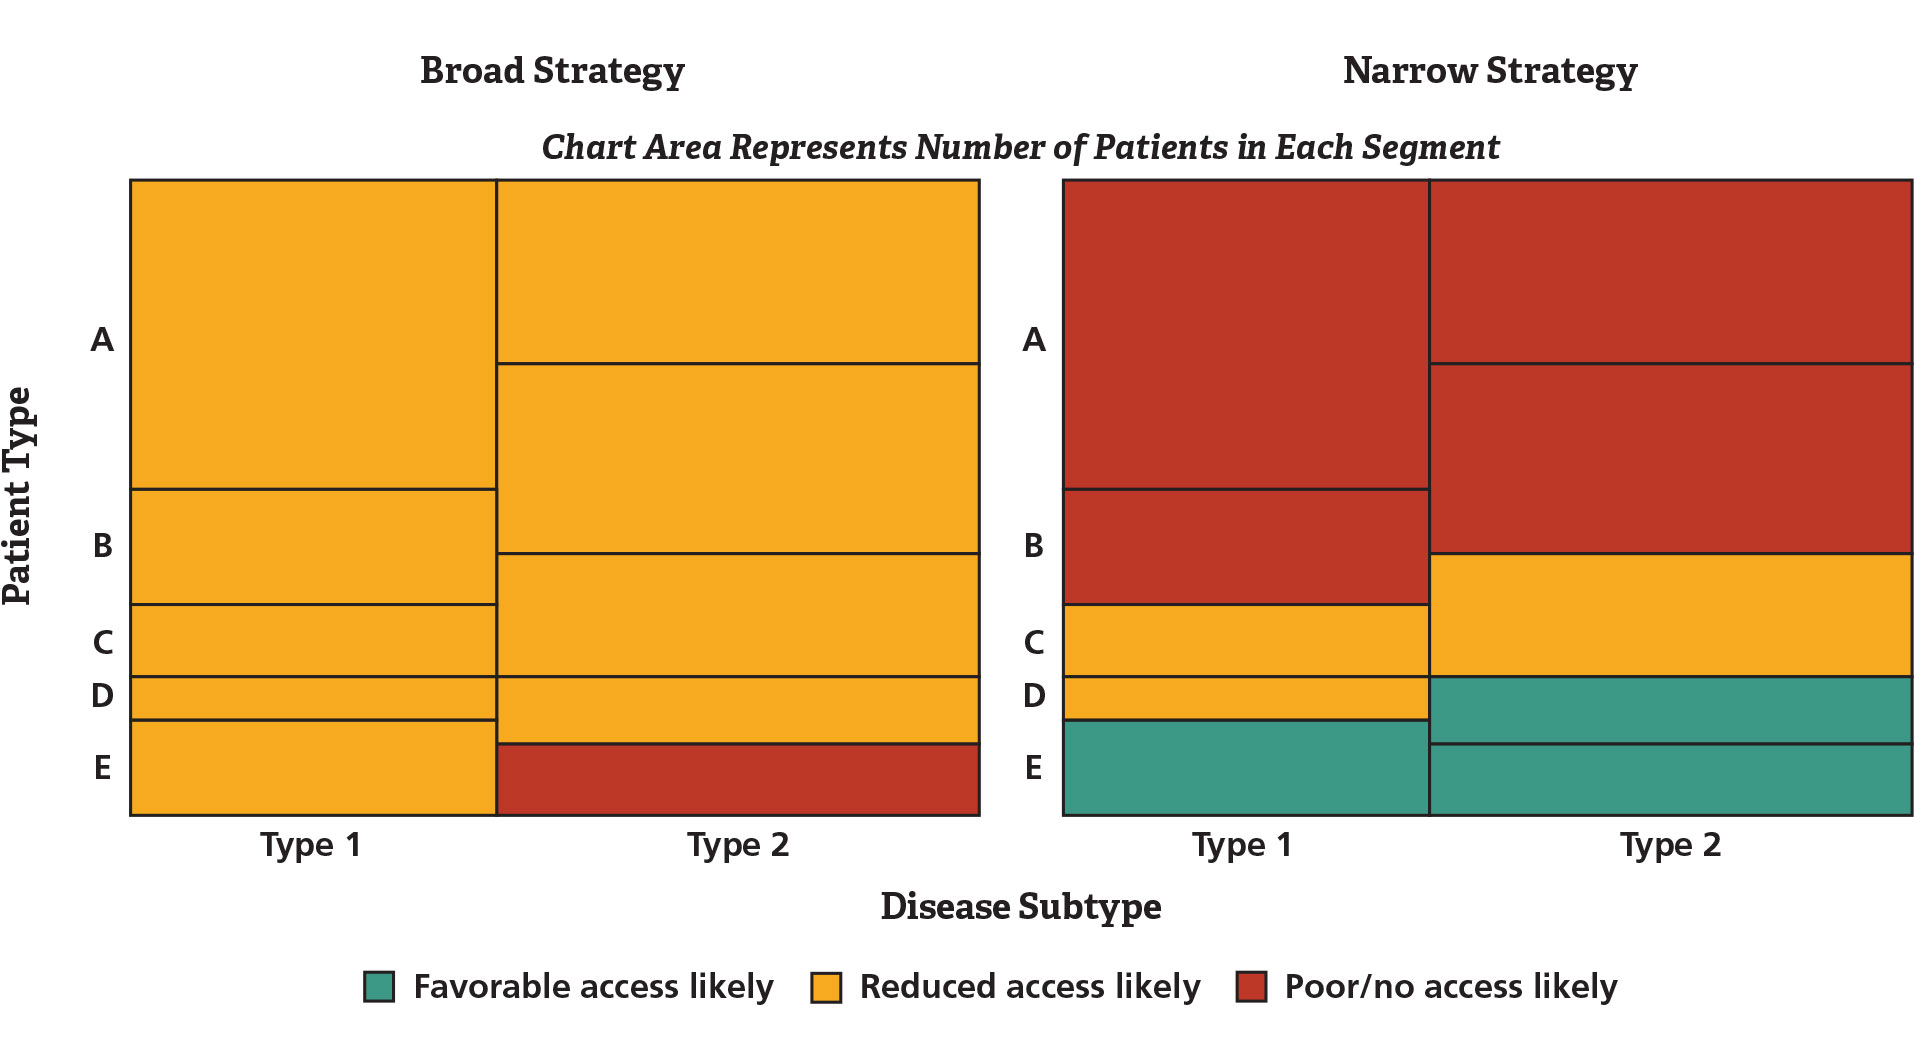 Figure 1. Strength of Value Proposition by Patient Segment and Disease Subtype